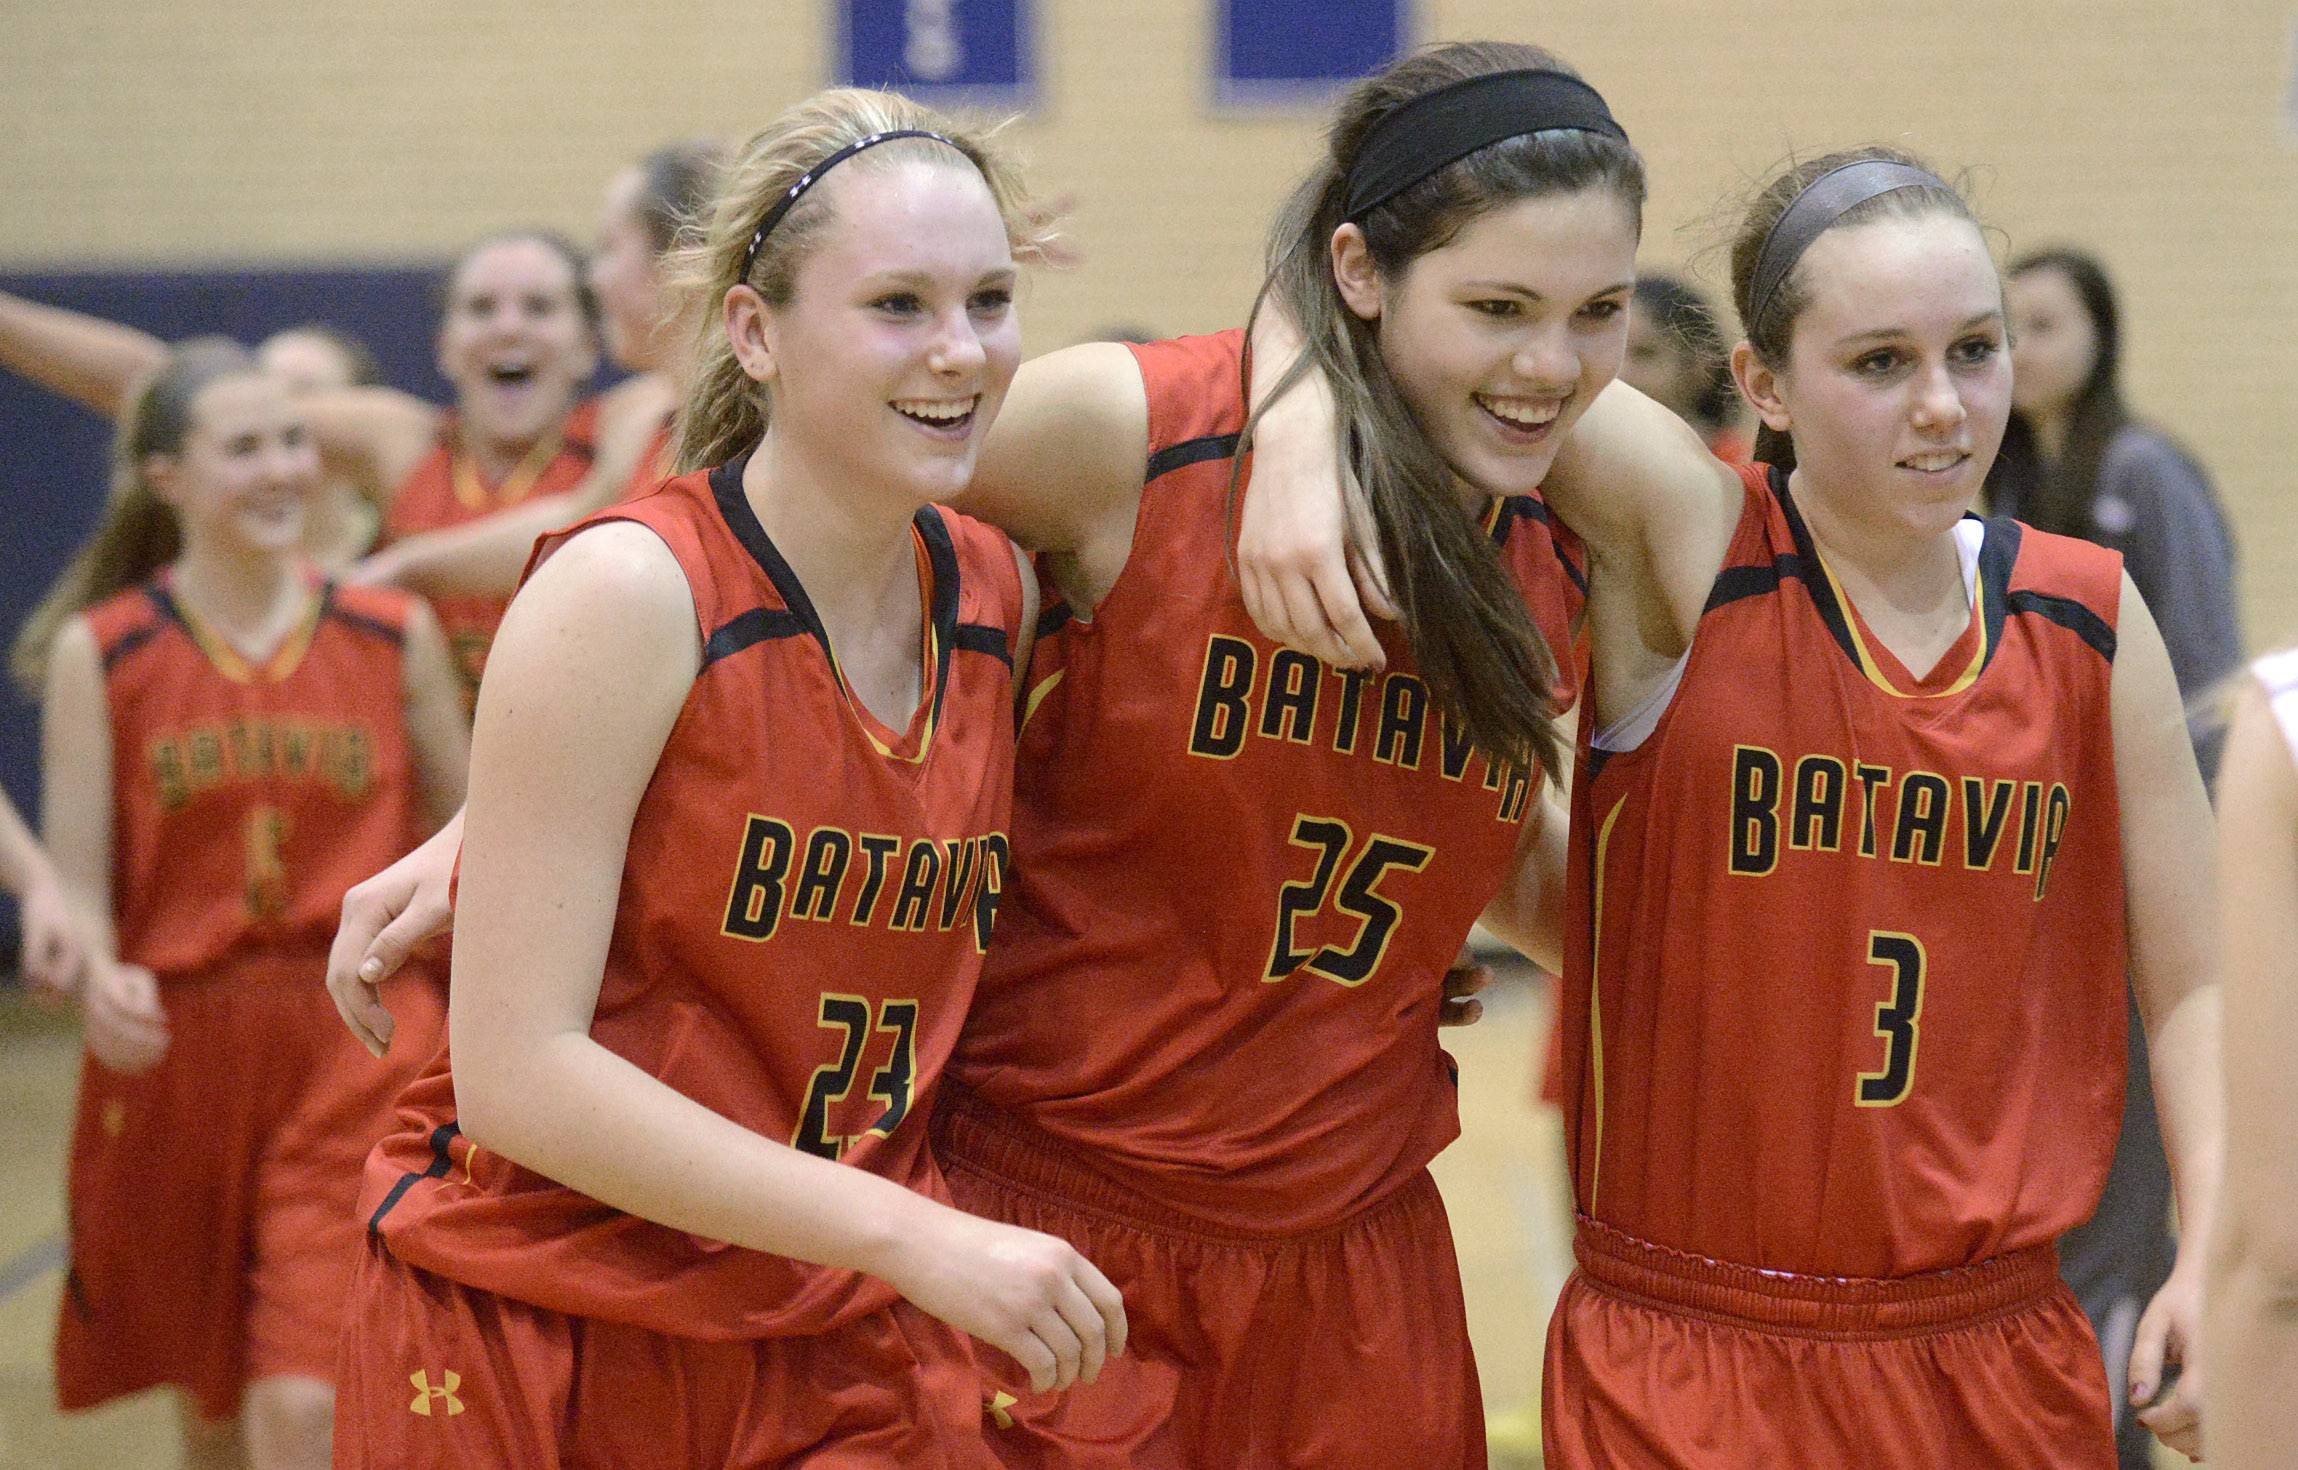 Images: Batavia vs. Downers Grove North girls basketball